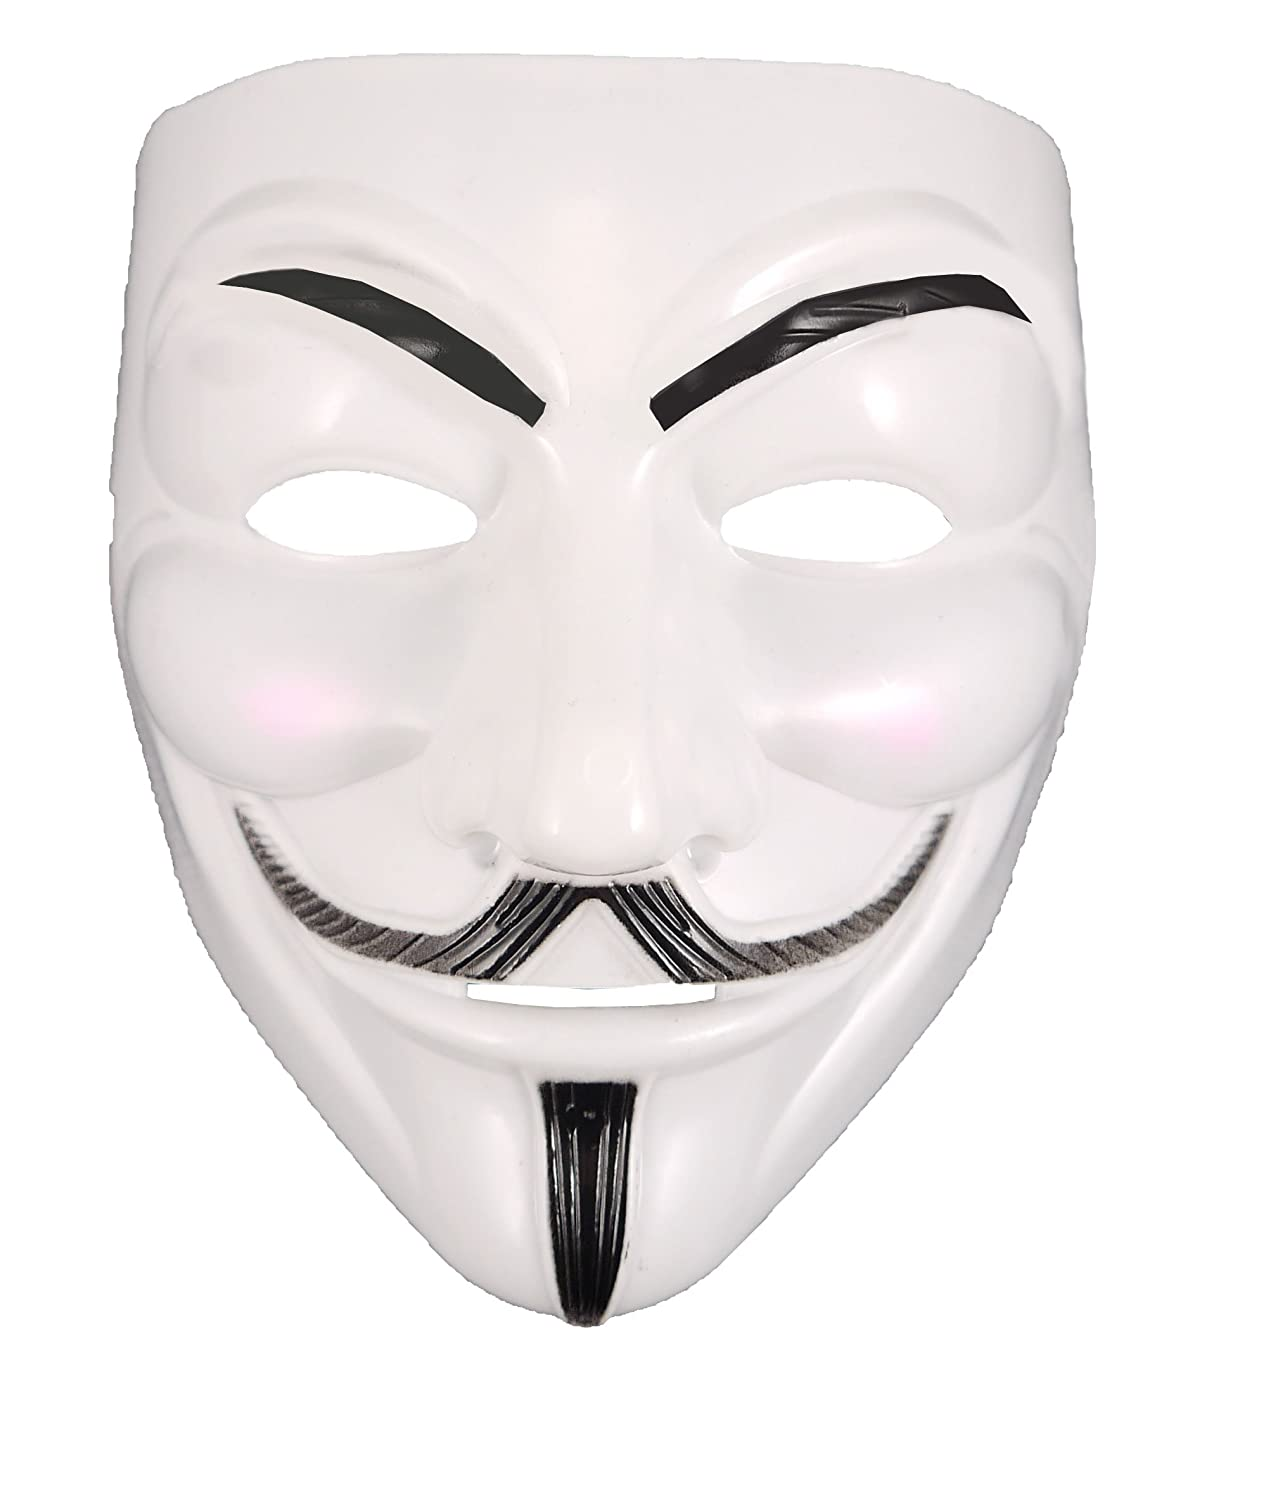 Unisex v for vendetta guy masquerade anonymous hacker halloween face mask amazon co uk toys games